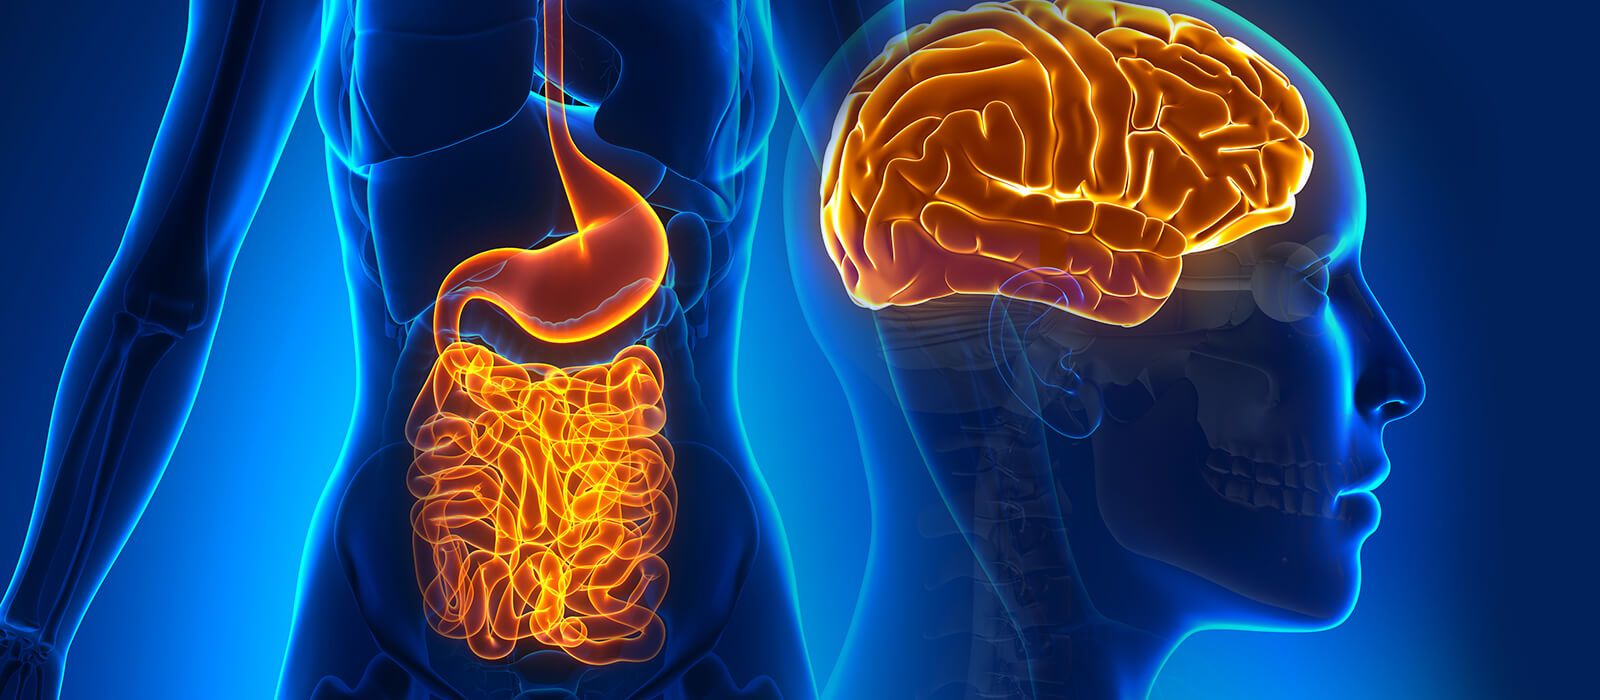 gut brain health and metnal wellness - The Surprising Link between Gut Health and Mental Health